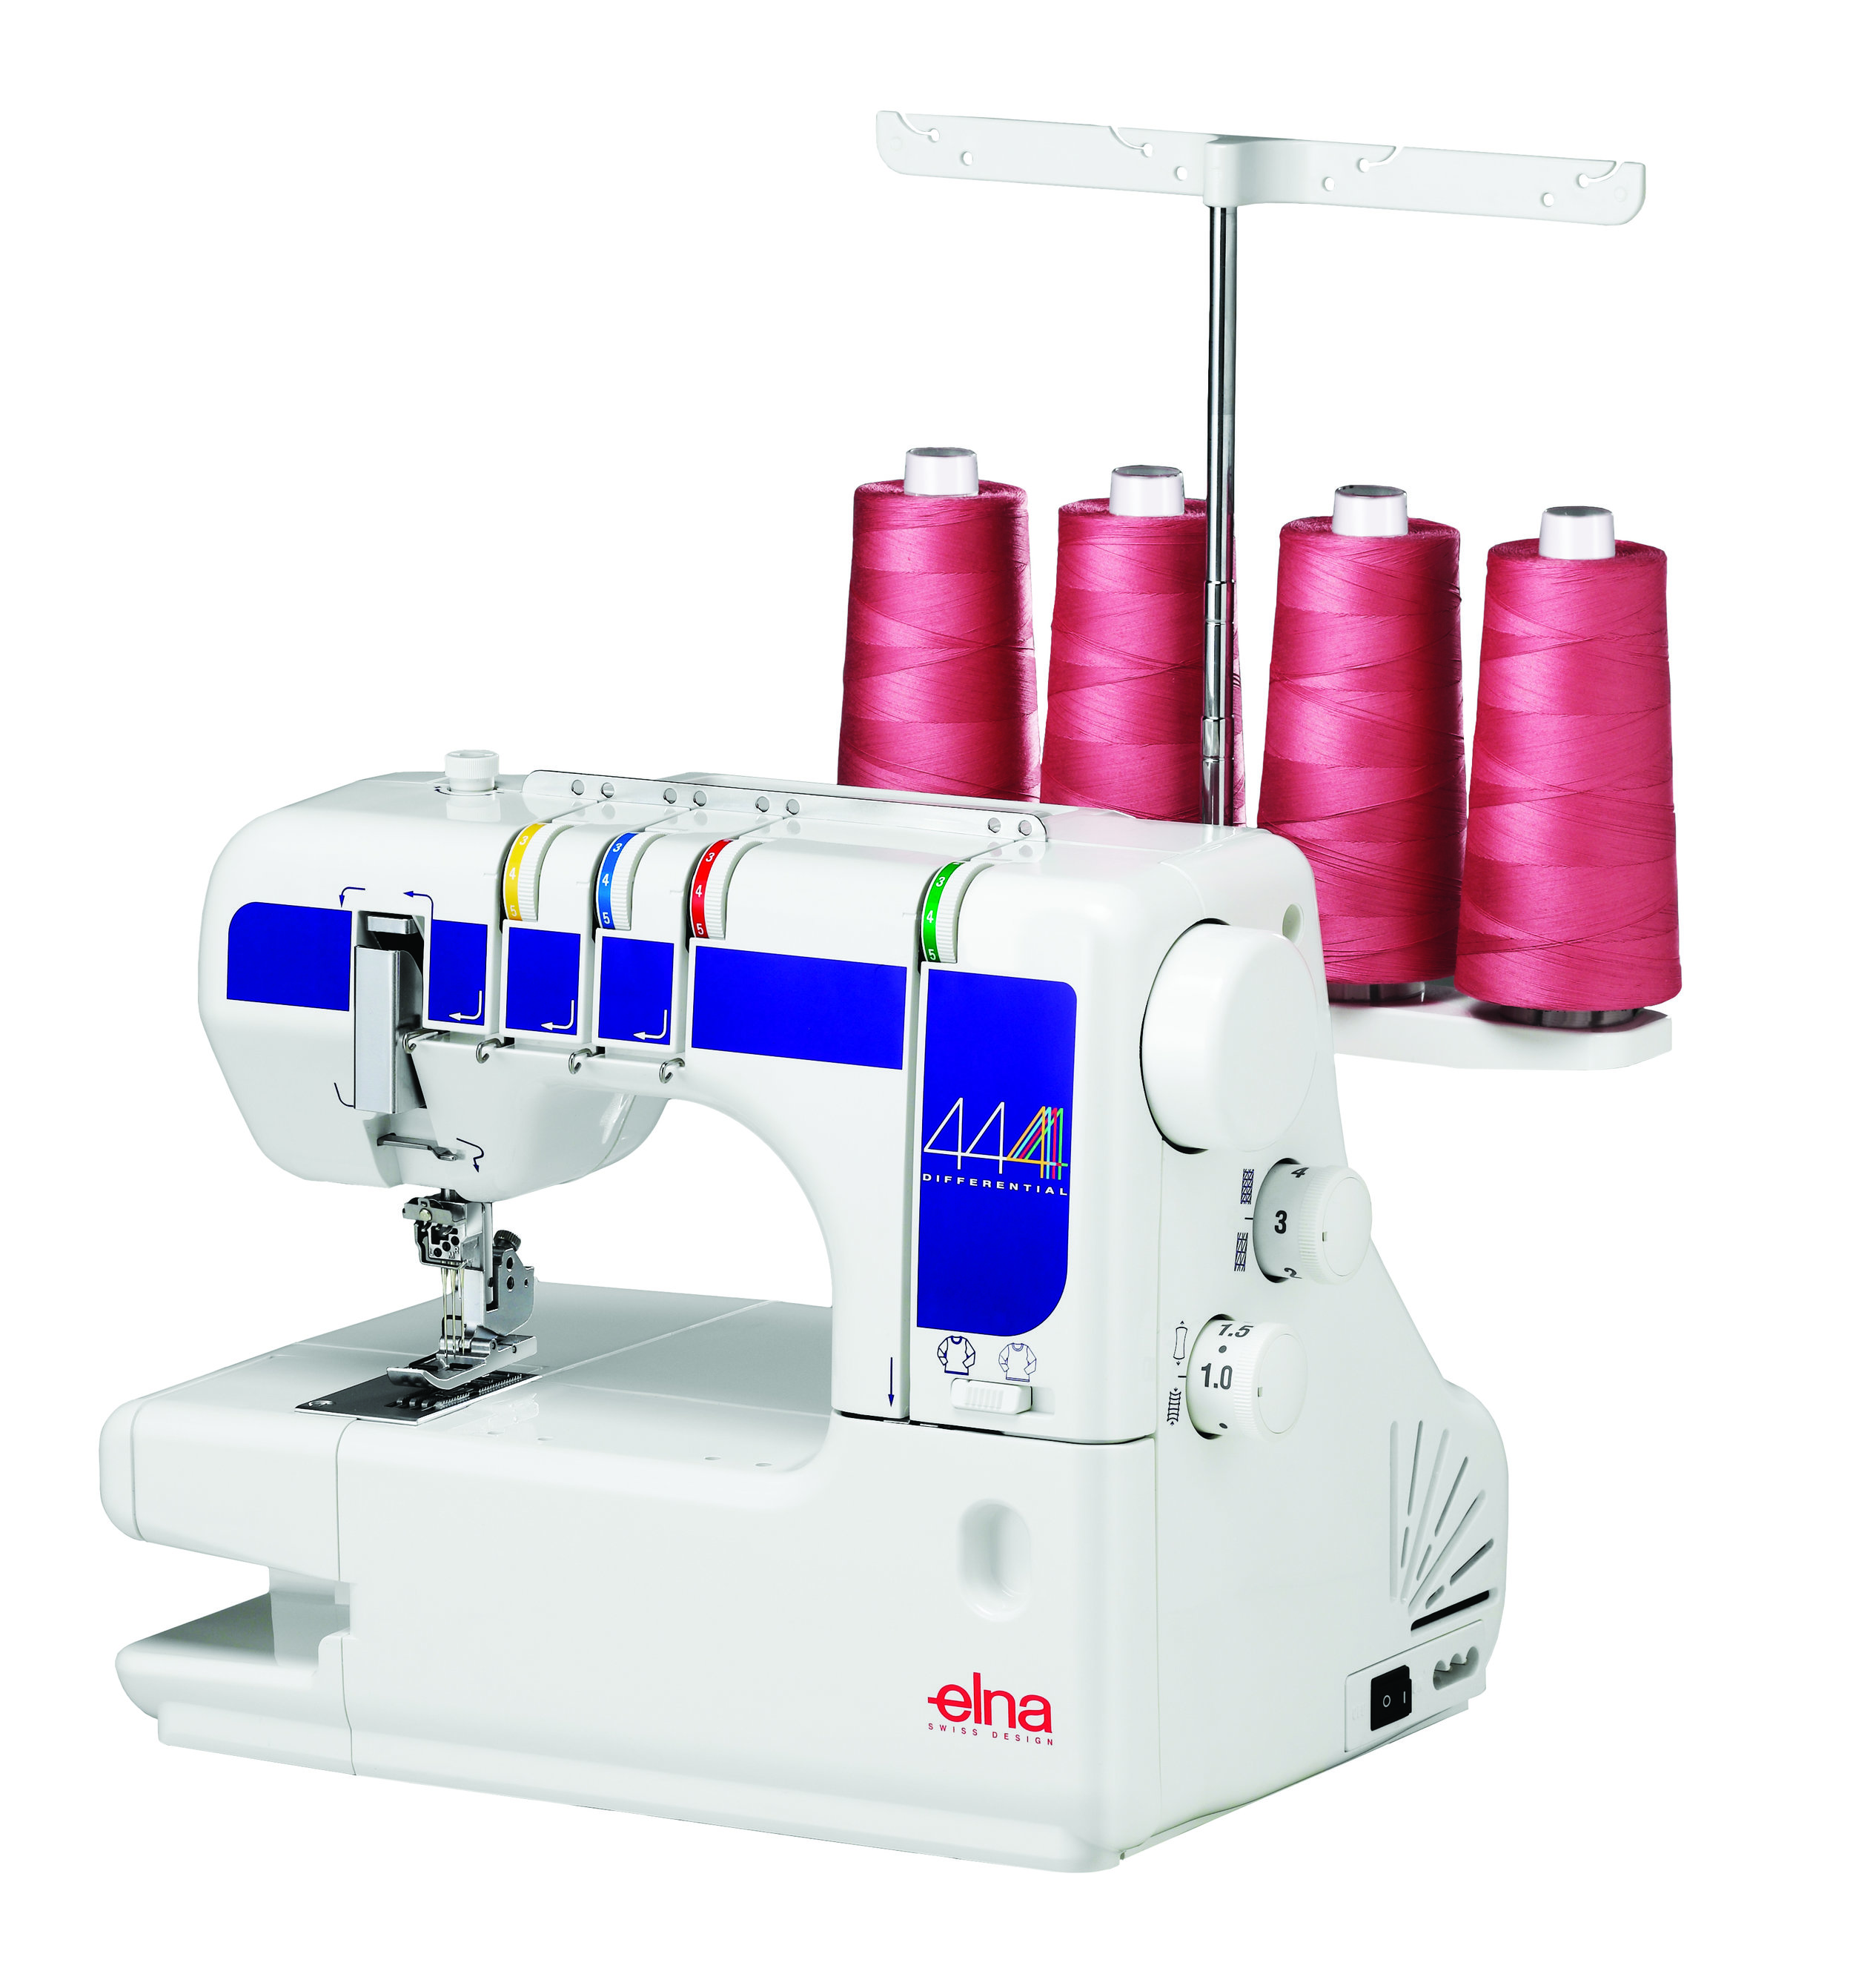 Elna 444  * 14 stitch programs  * color thread guide chart  * 4 spools  * built in retractable handle  * adjustable differential feed